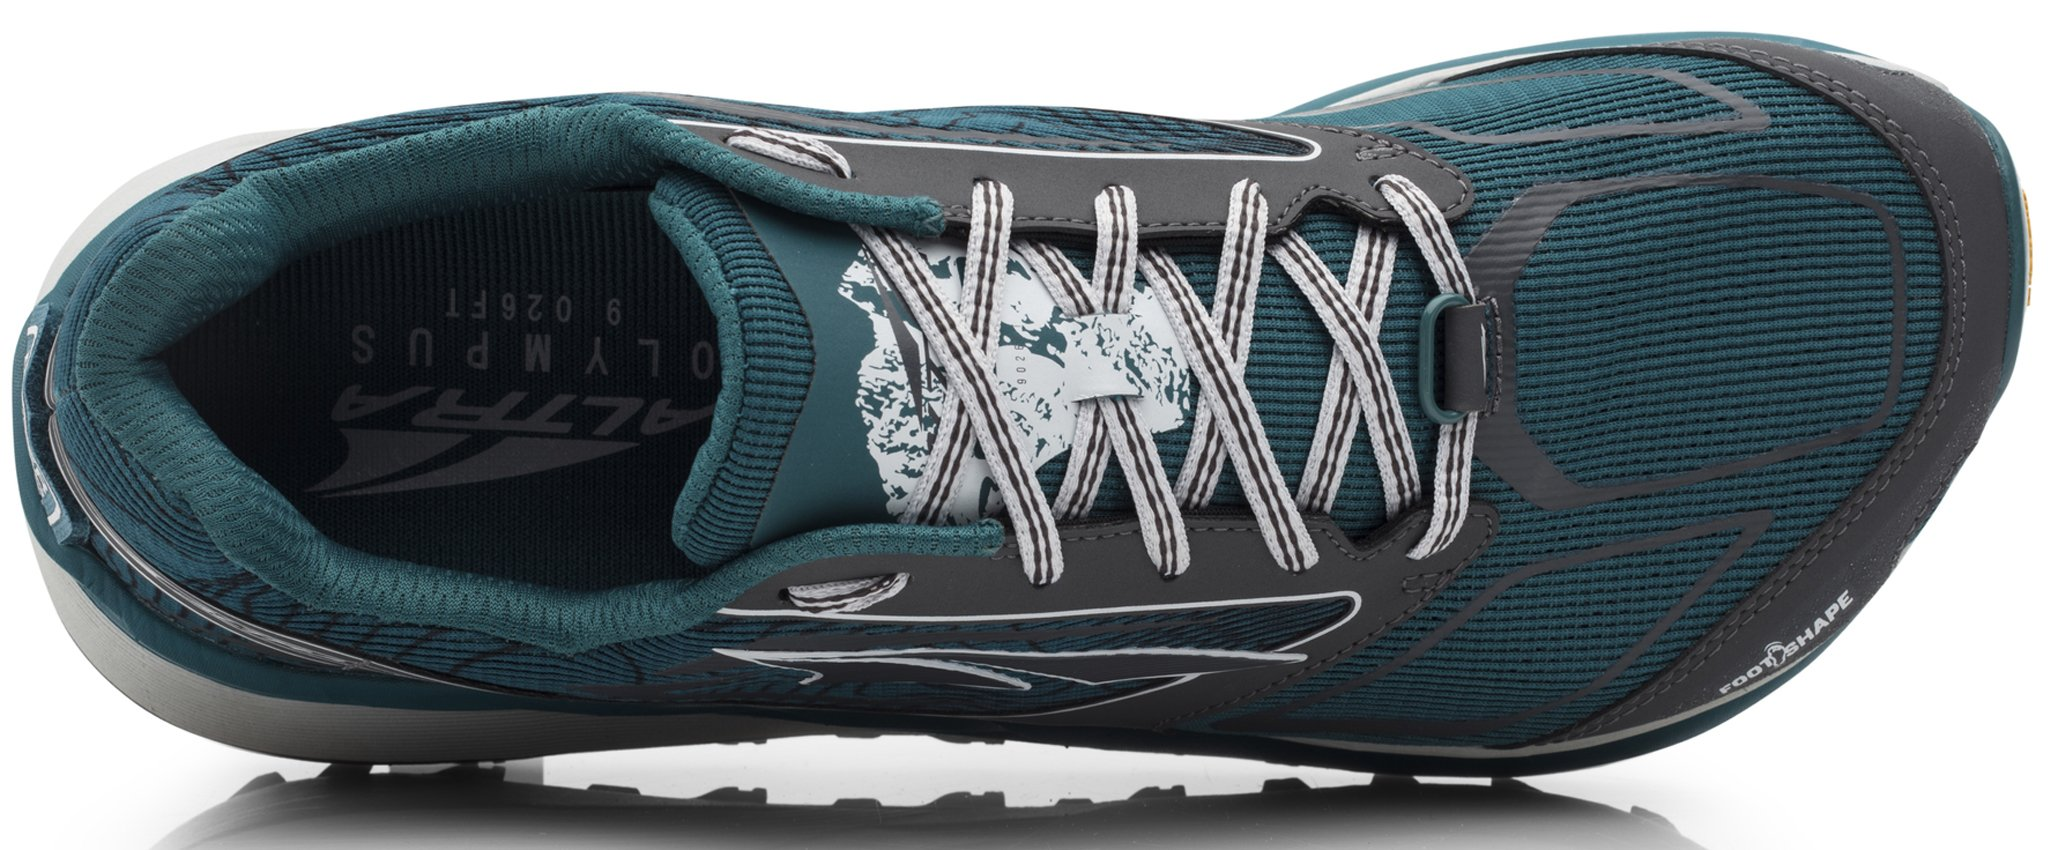 Altra AFM1859F Men's Olympus 3 Running Shoe, Green - 11 D(M) US by Altra (Image #3)